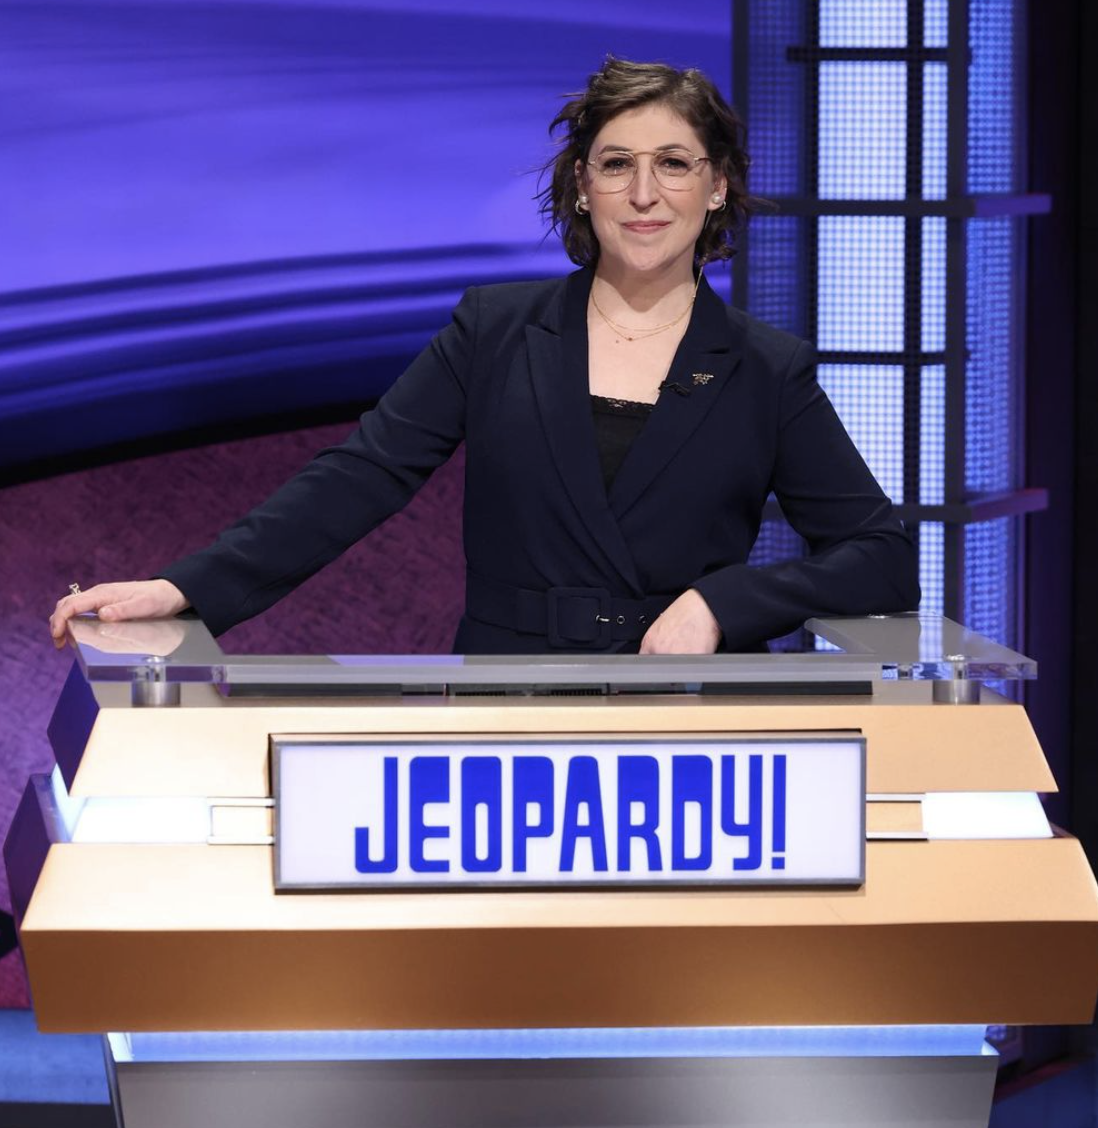 Mayim Bialik is filling in as the host of